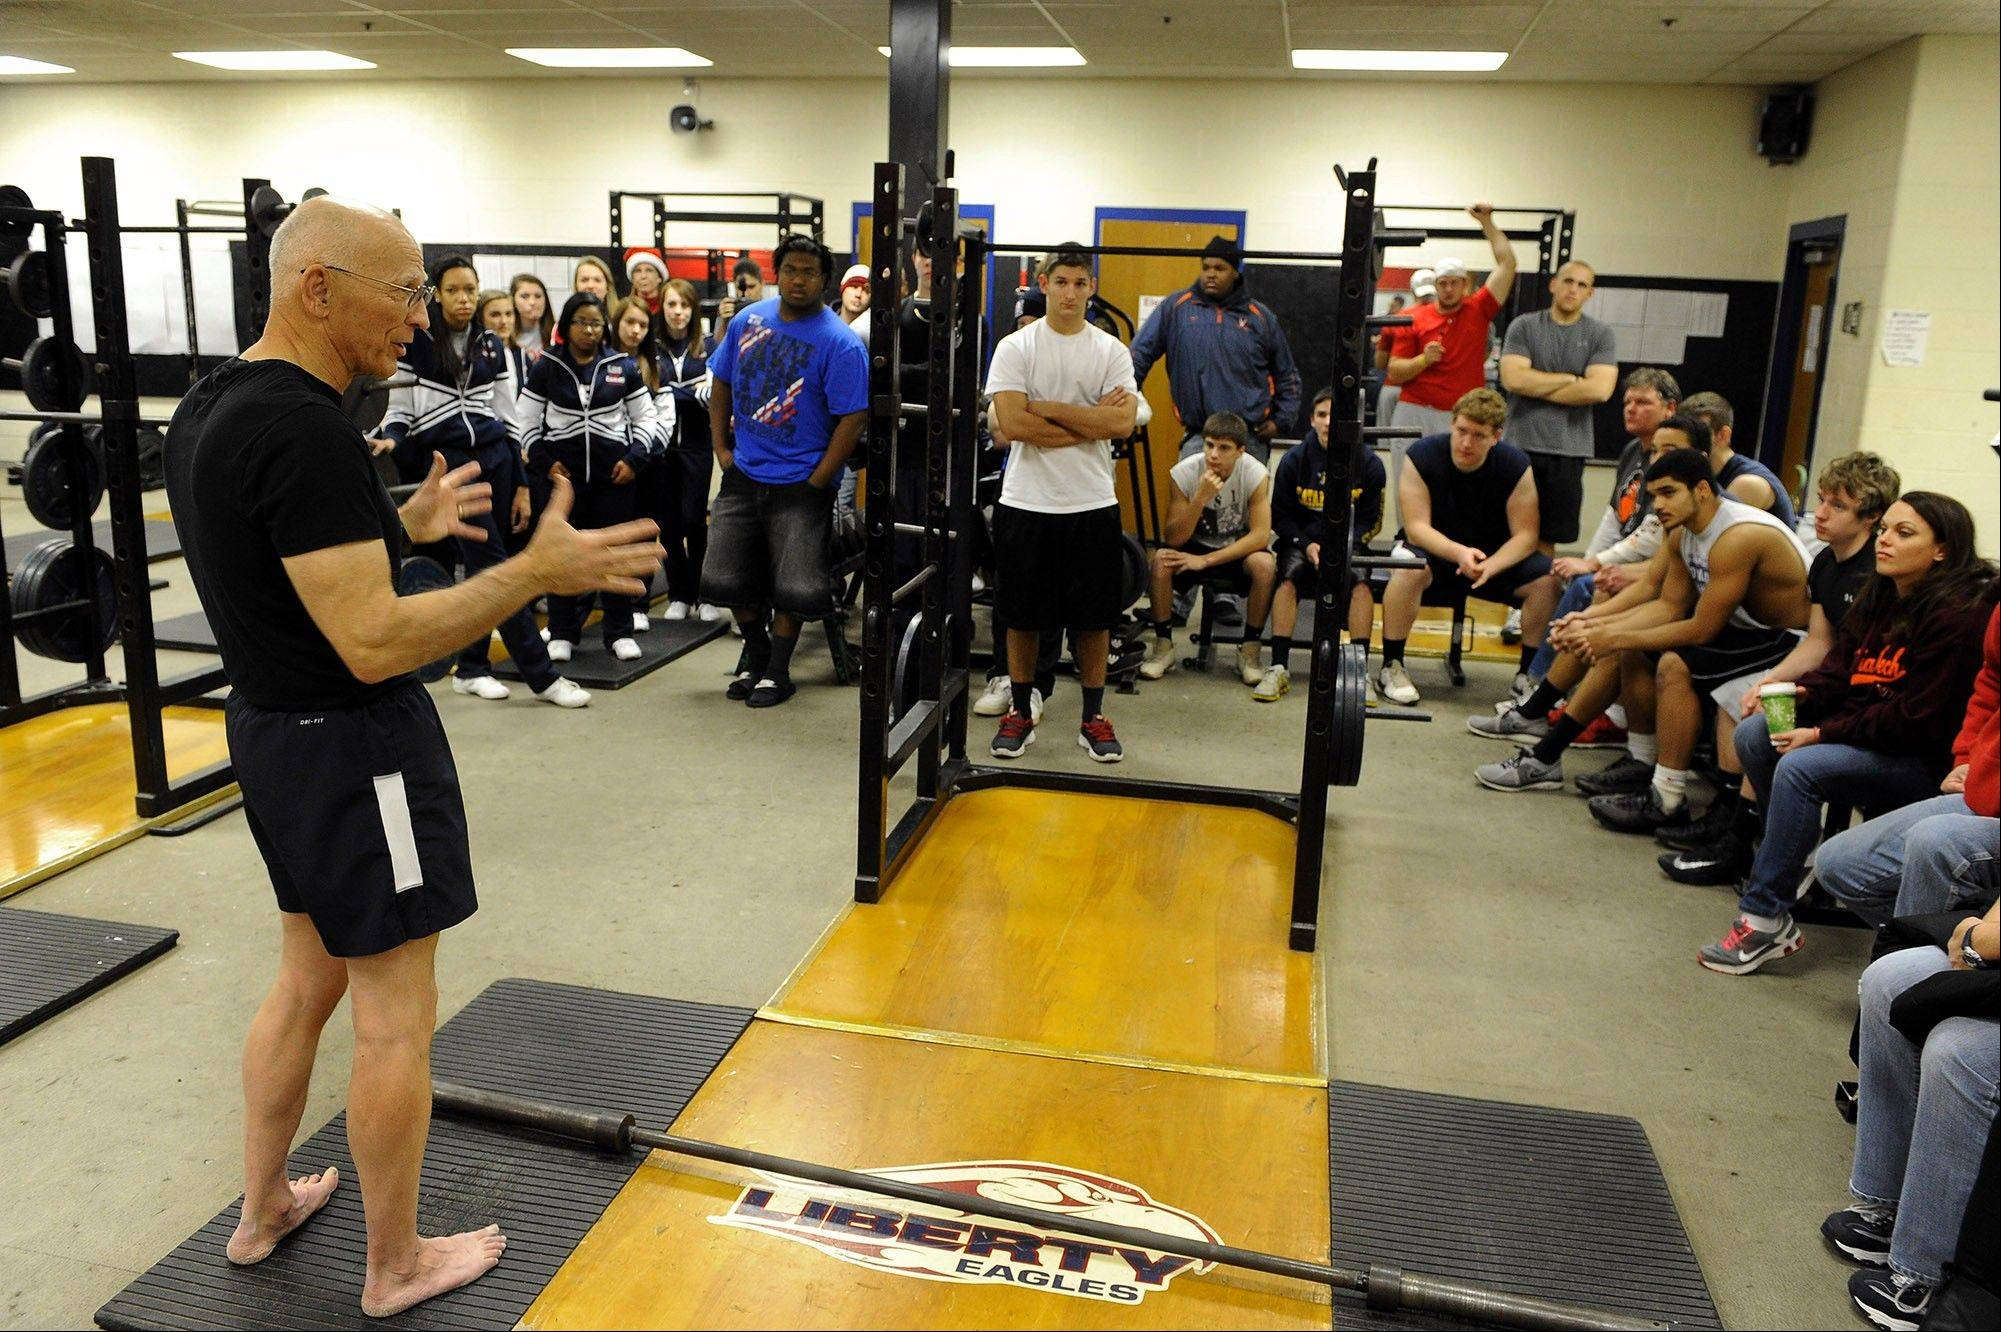 "Photo by Richard A. Lipski/Washington Post ""There's life after 20,"" Durante says as he gives a pep talk to his teenage competition before a pullup contest that raised $615 for Liberty High School in Bealeton, Va."